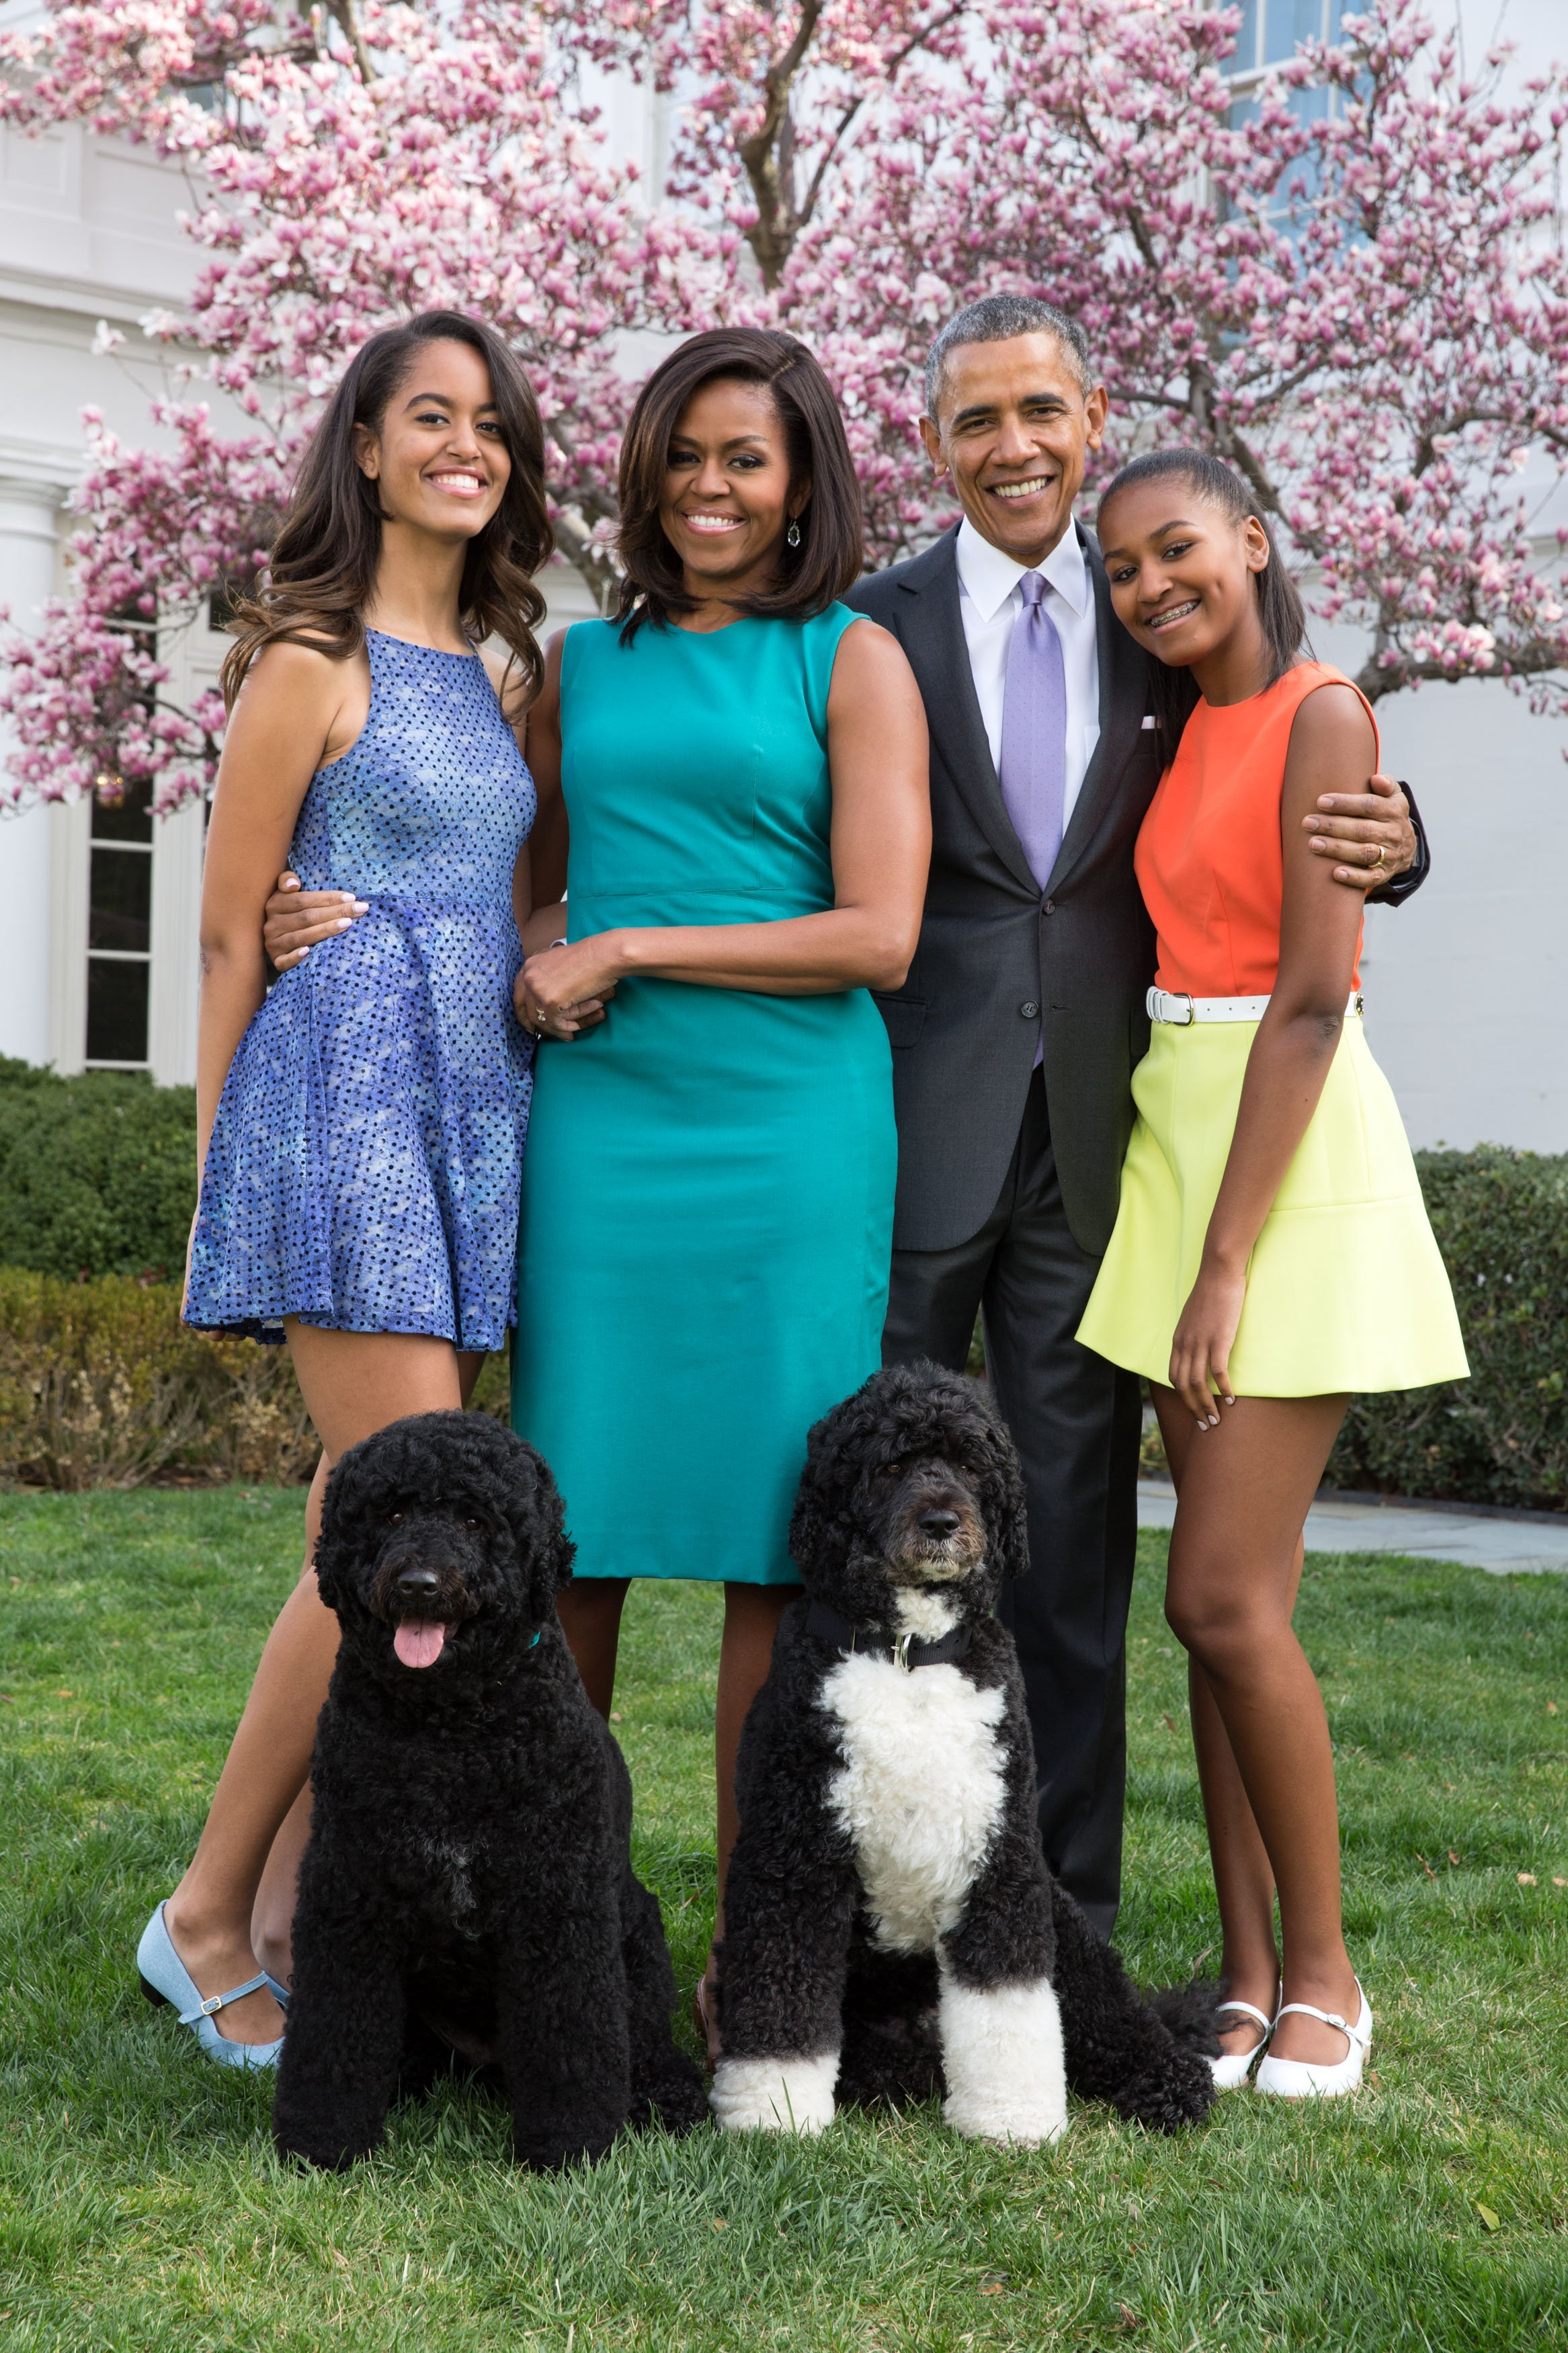 Barack, Michelle, Malia & Sasha Obama pose for a family portrait with their pets Bo and Sunny at the White House on April 5, 2015 in Washington, DC. | Photo: Getty Images.